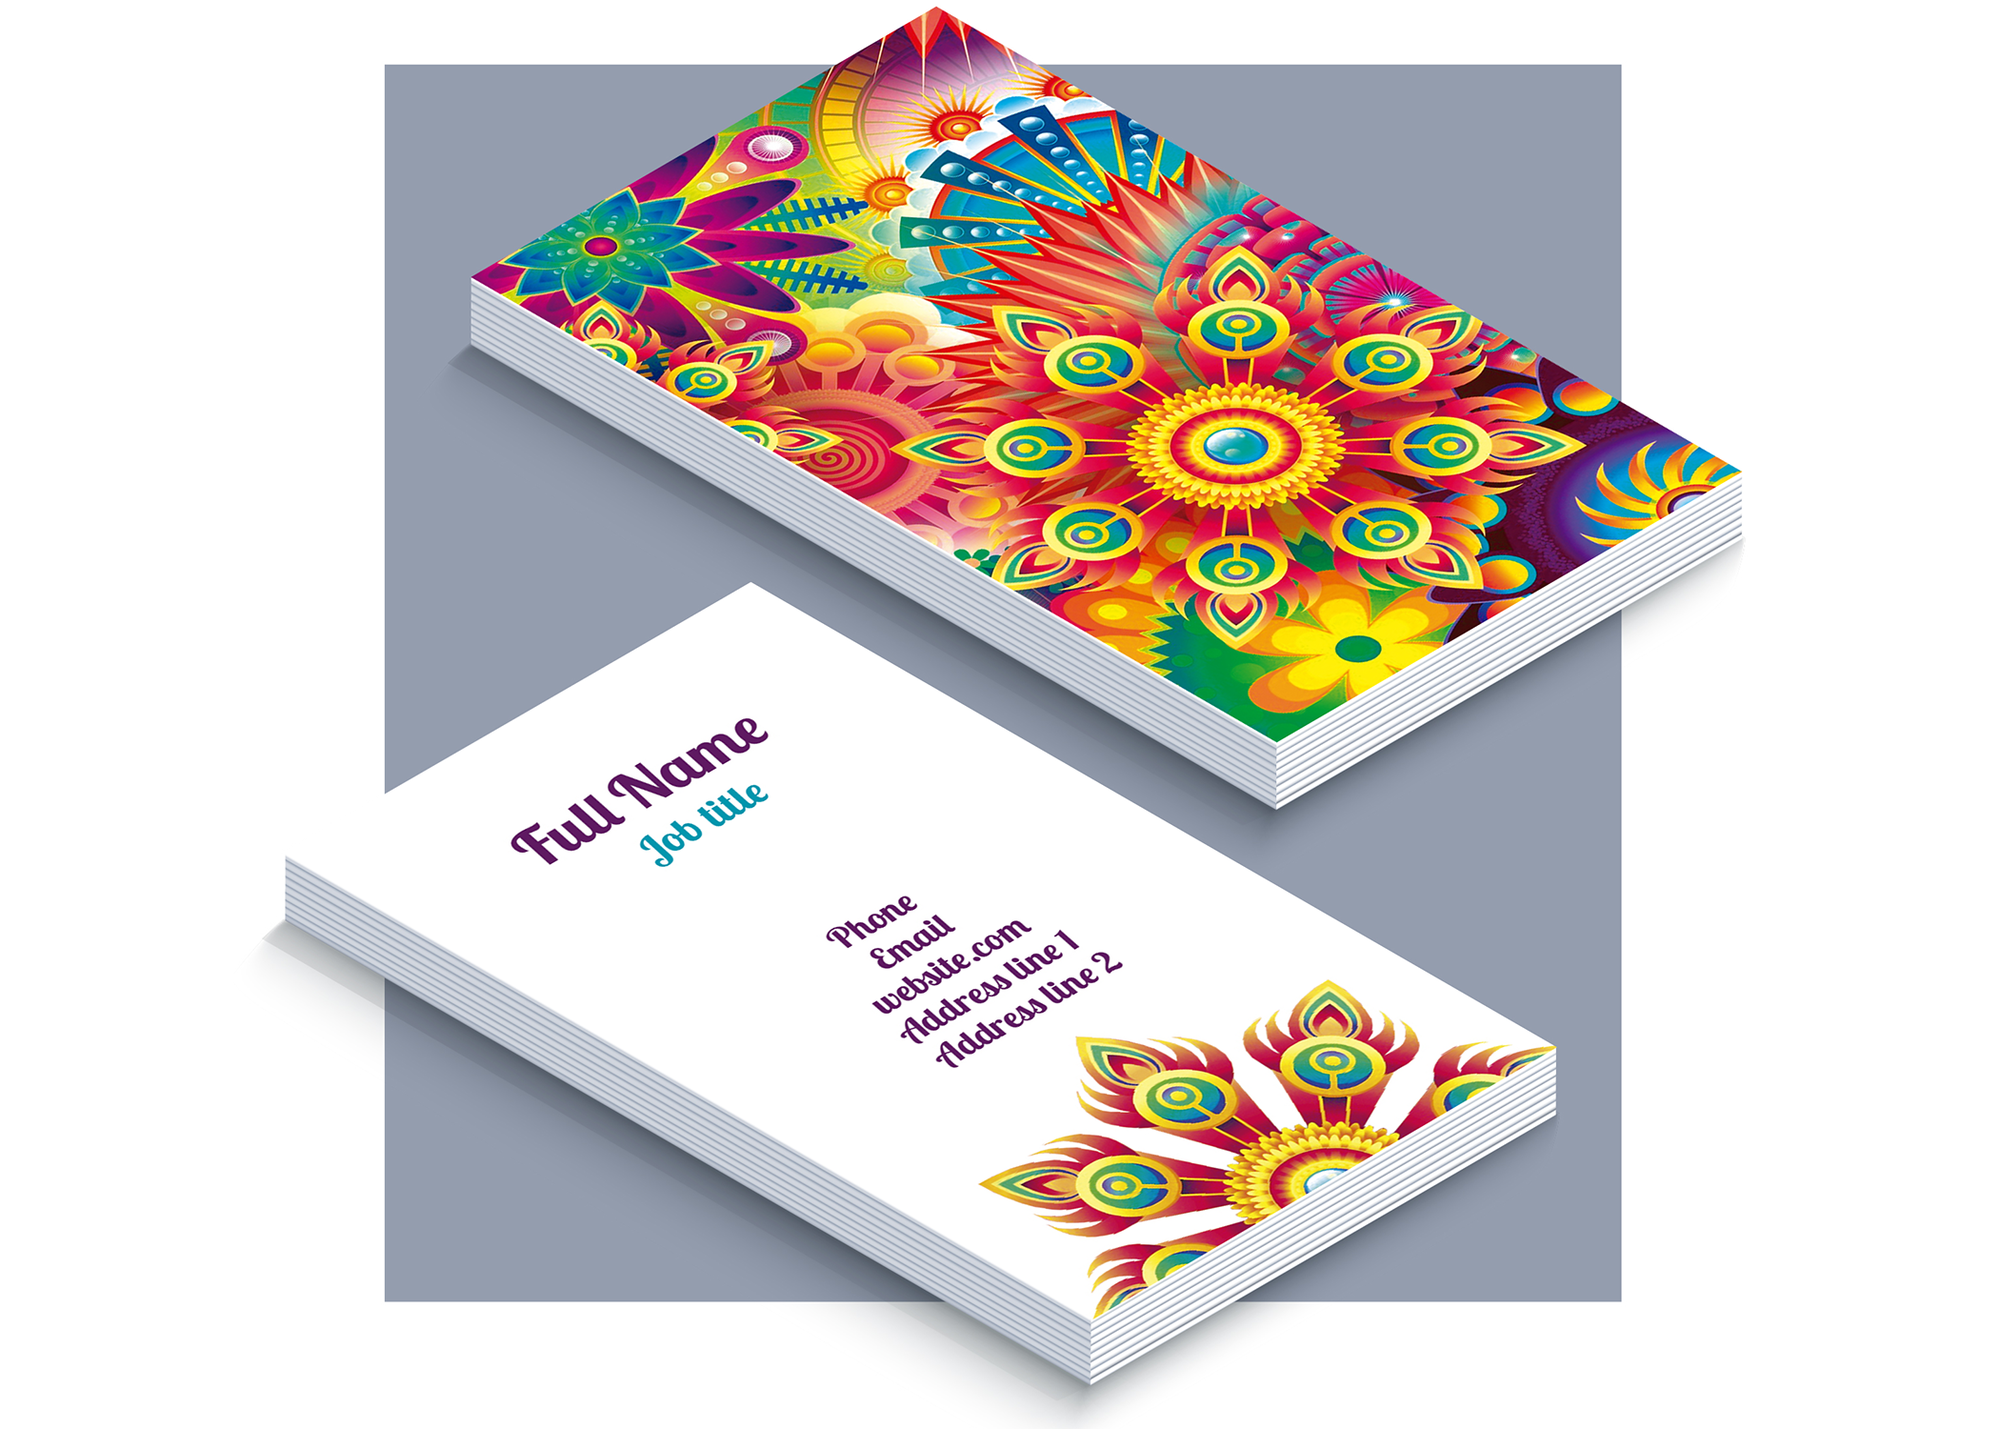 https://www.k12print.com/images/products_gallery_images/soft_touch_business_cards.png